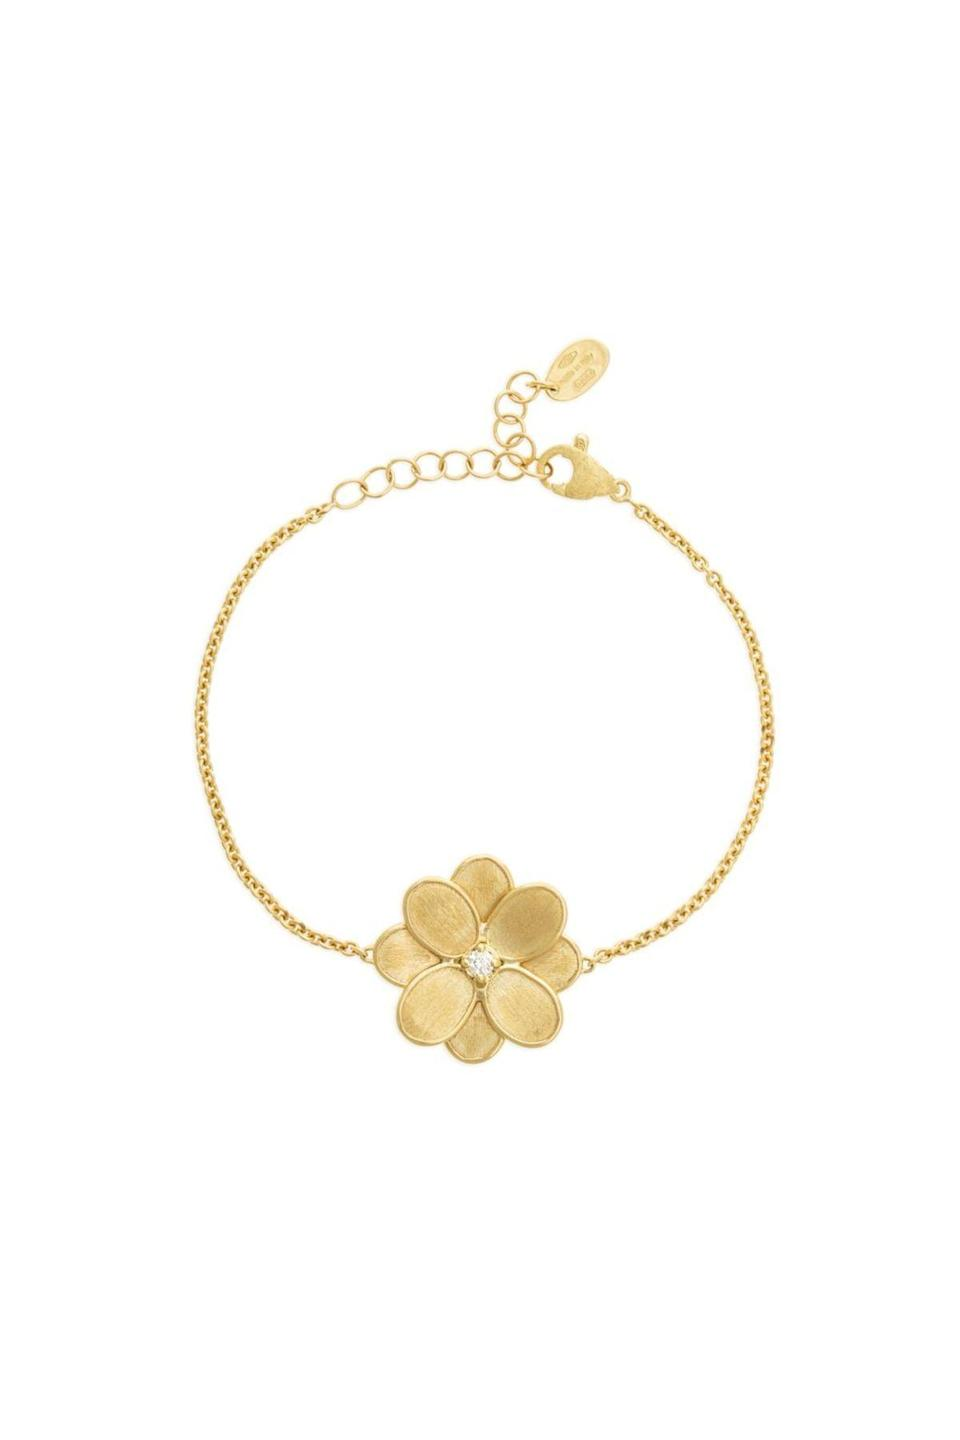 """<p><strong>Marco Bicego</strong></p><p>marcobicego.com</p><p><strong>$1930.00</strong></p><p><a href=""""https://us.marcobicego.com/products/petali-single-flower-bracelet"""" rel=""""nofollow noopener"""" target=""""_blank"""" data-ylk=""""slk:Shop Now"""" class=""""link rapid-noclick-resp"""">Shop Now</a></p><p>Two things that are always in style: a dainty chain and a floral detail. </p>"""